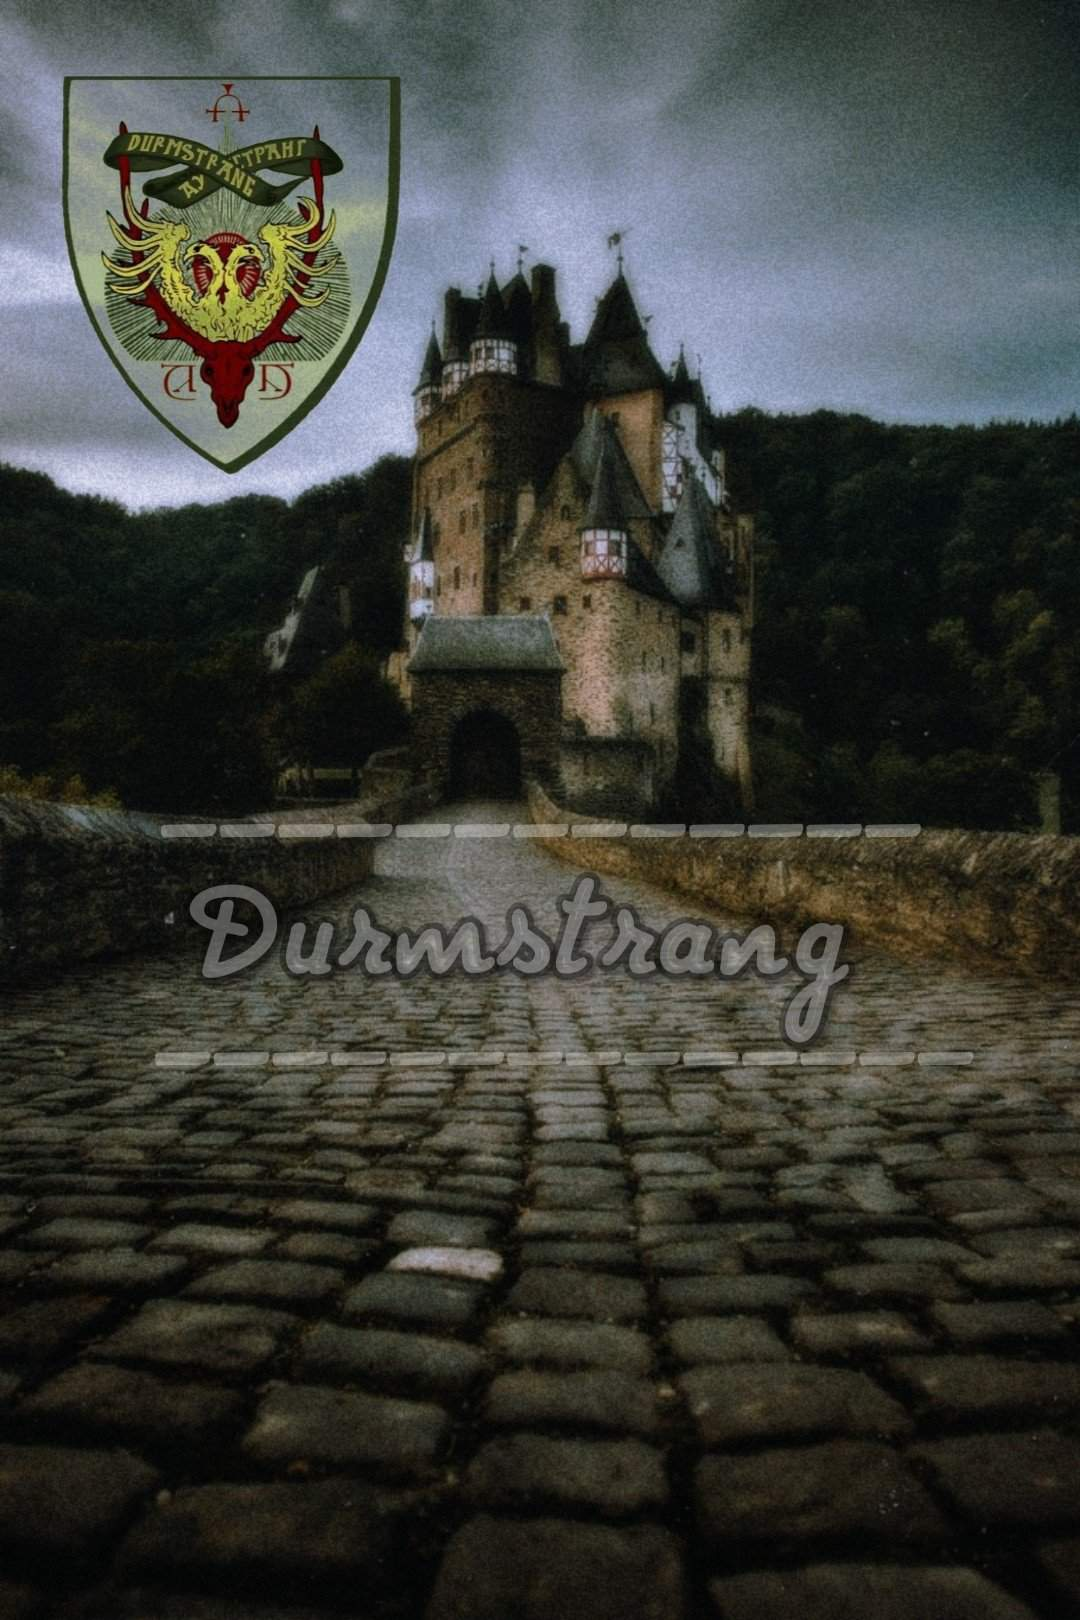 Durmstrang Institute Wiki Harry Potter Amino Дурмстранг) is the scandinavian wizarding school, located in the northernmost regions of either. amino apps